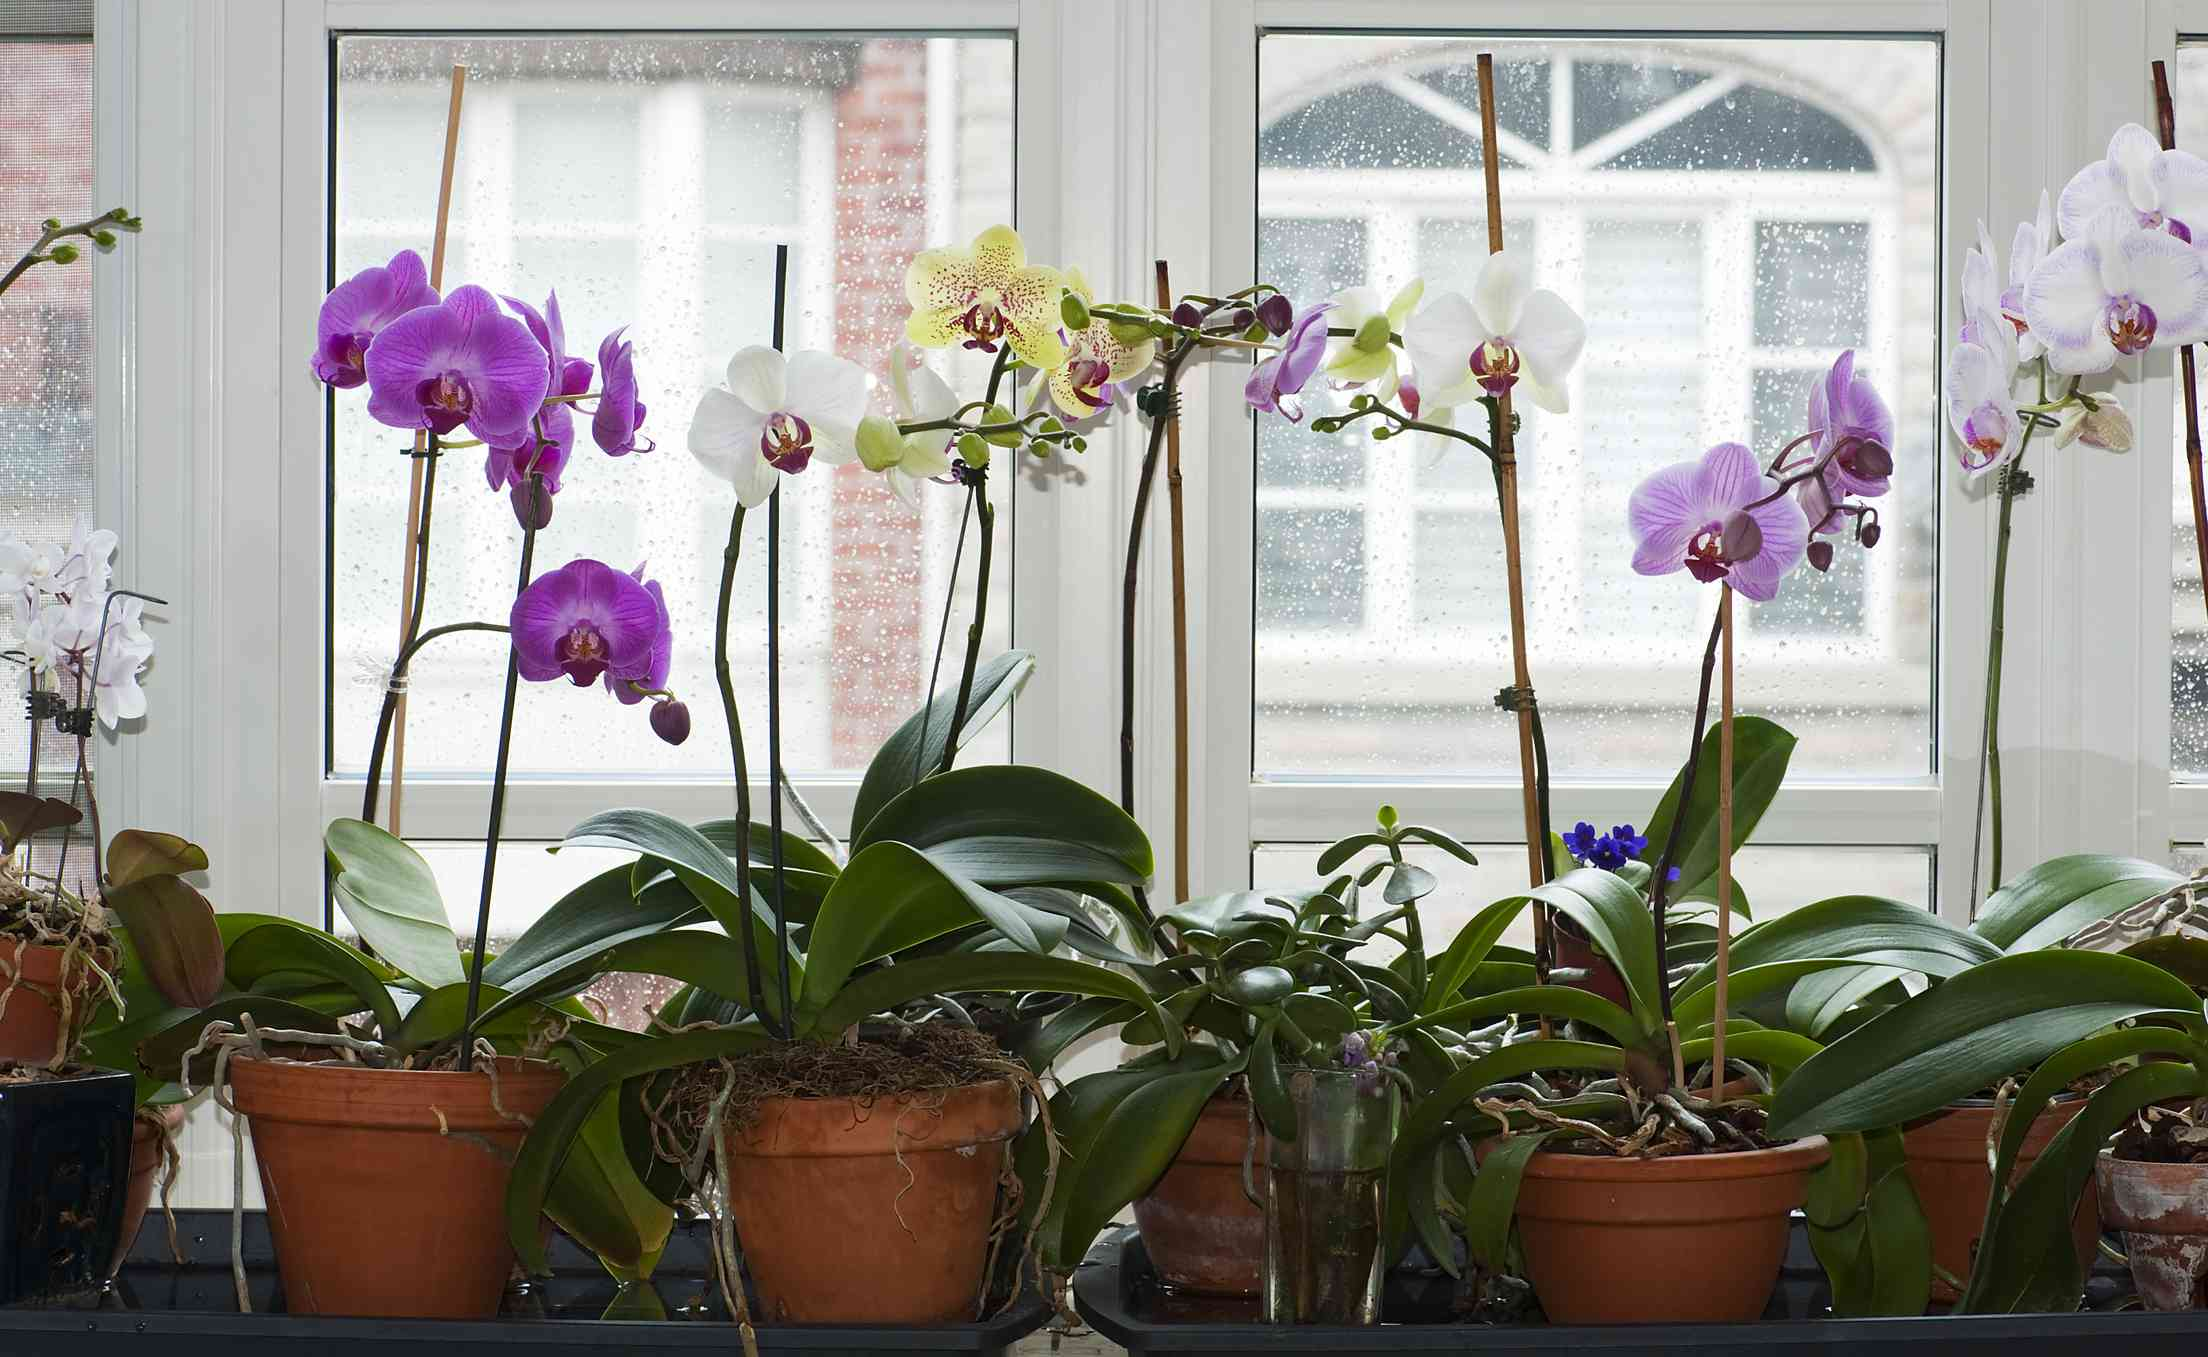 moon orchids in planters